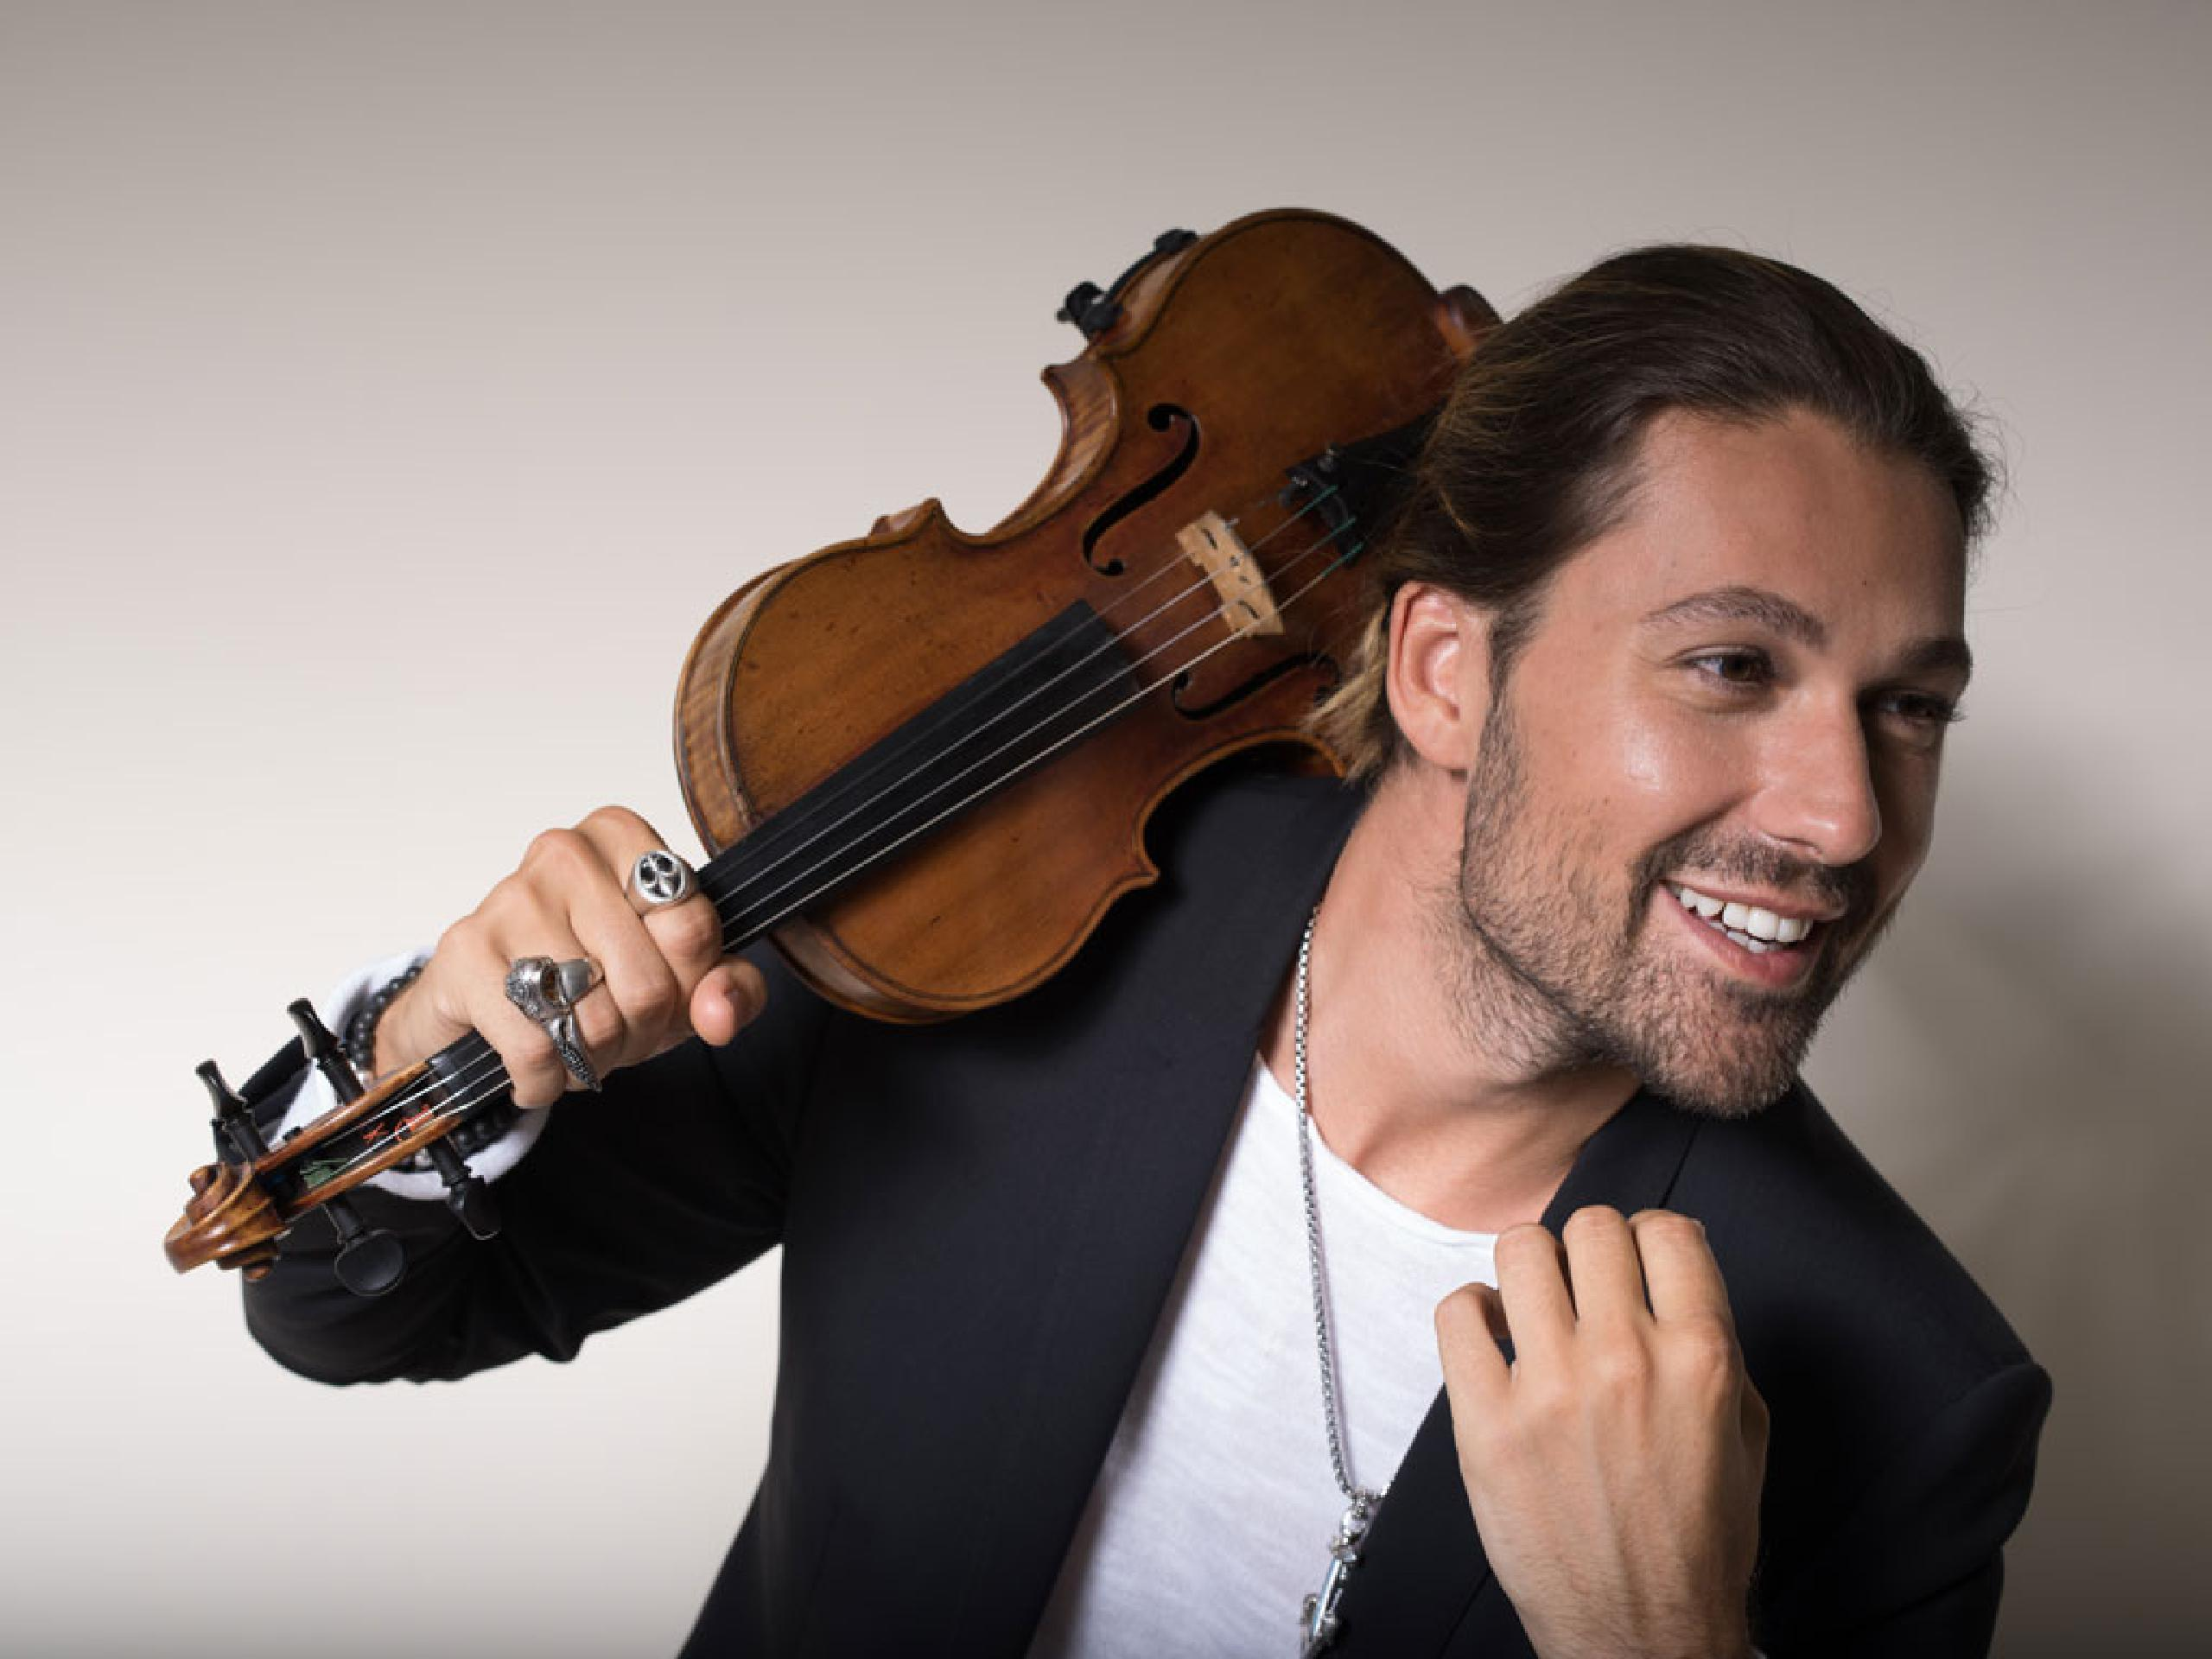 David Garrett Tickets Für 2017 2018 Tour Information über Konzerte